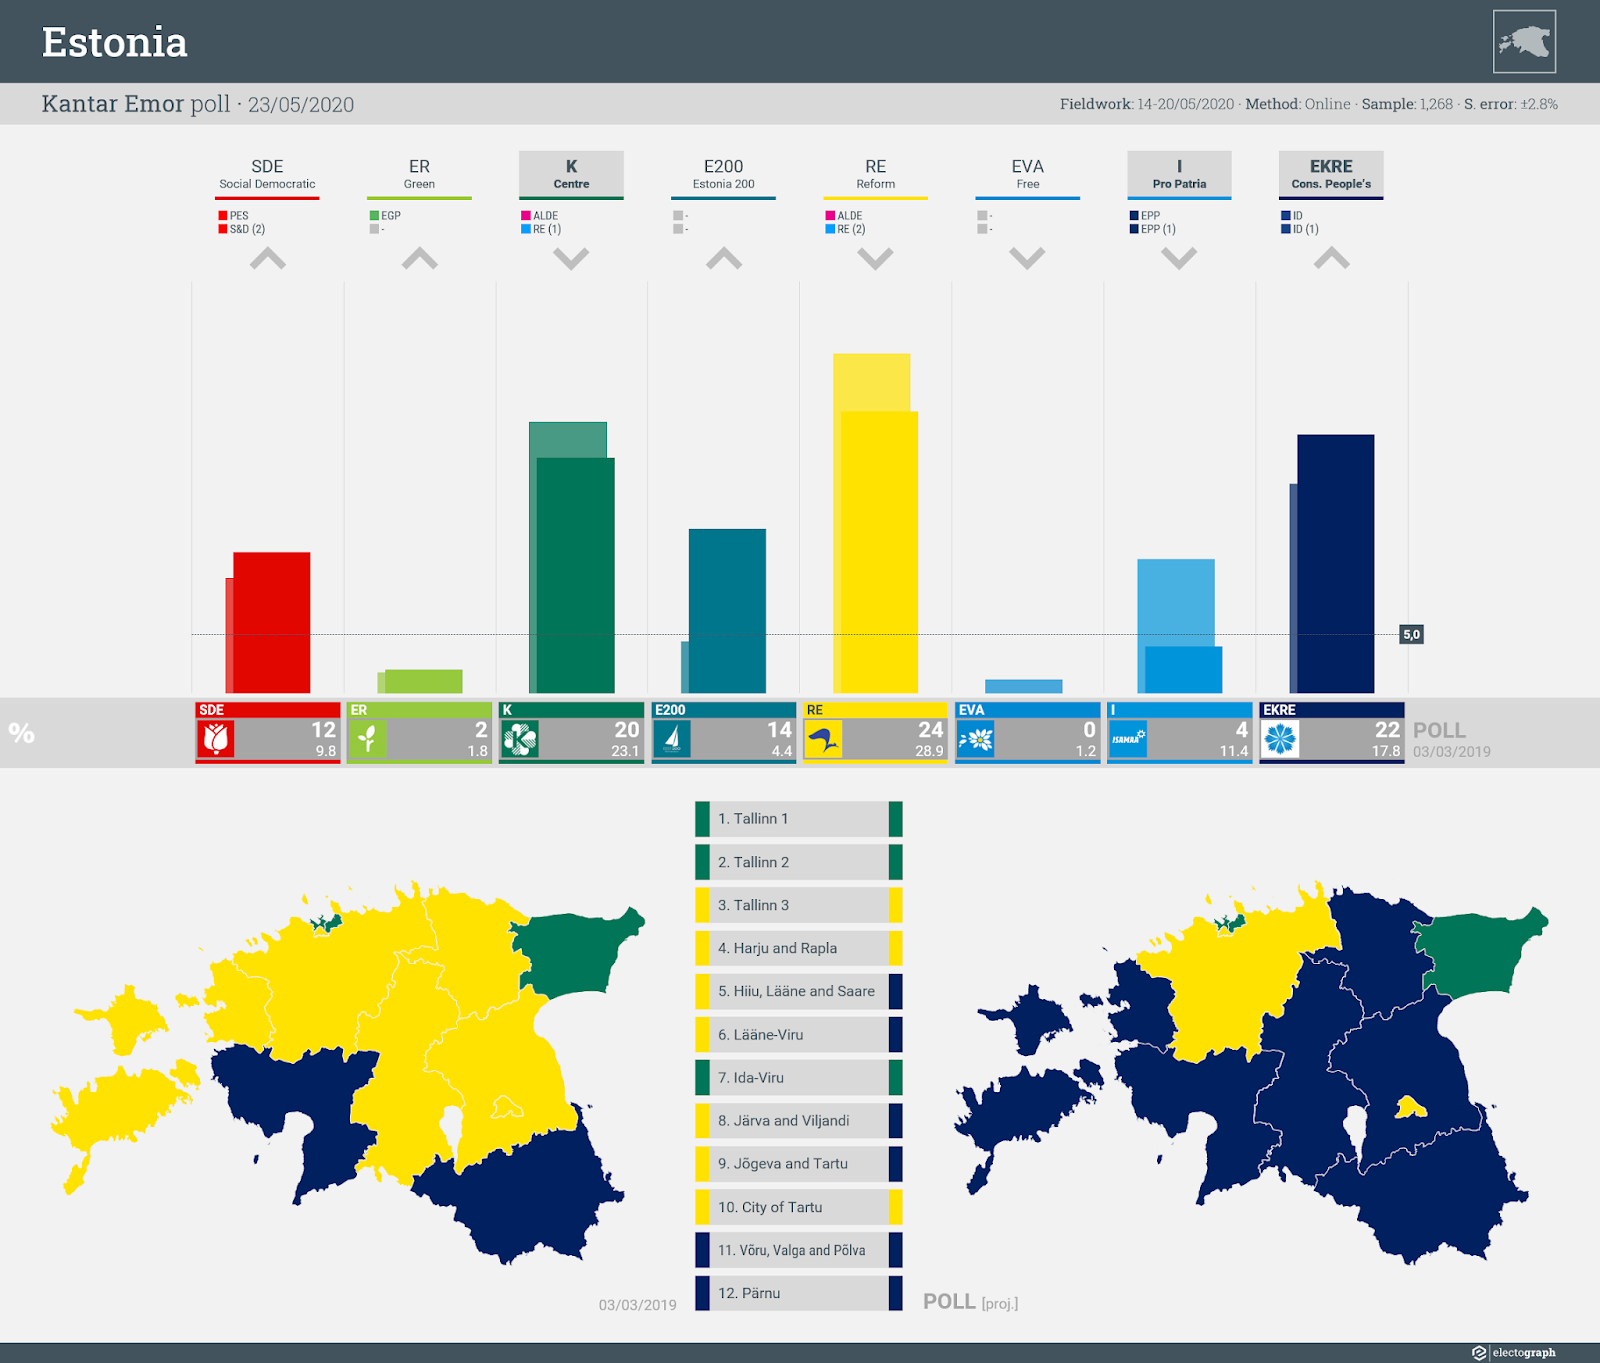 ESTONIA: Kantar Emor poll chart, 22 May 2020